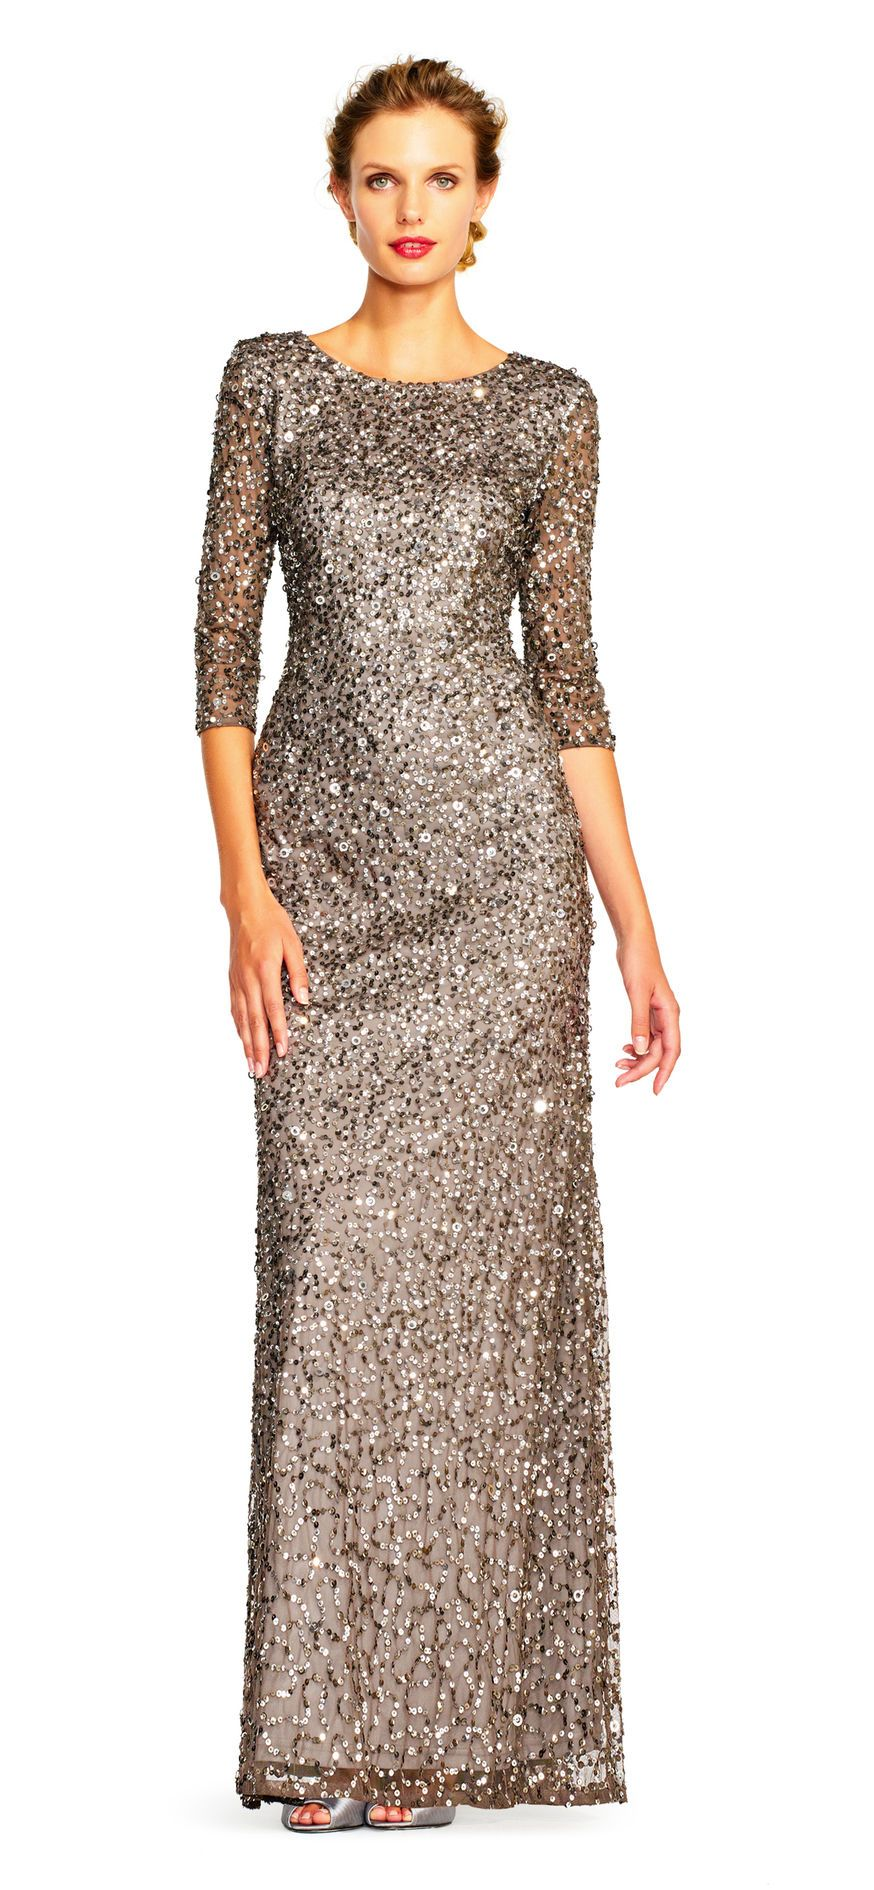 Scoop Back Sequin Gown   Gowns   Pinterest   Adrianna papell ...